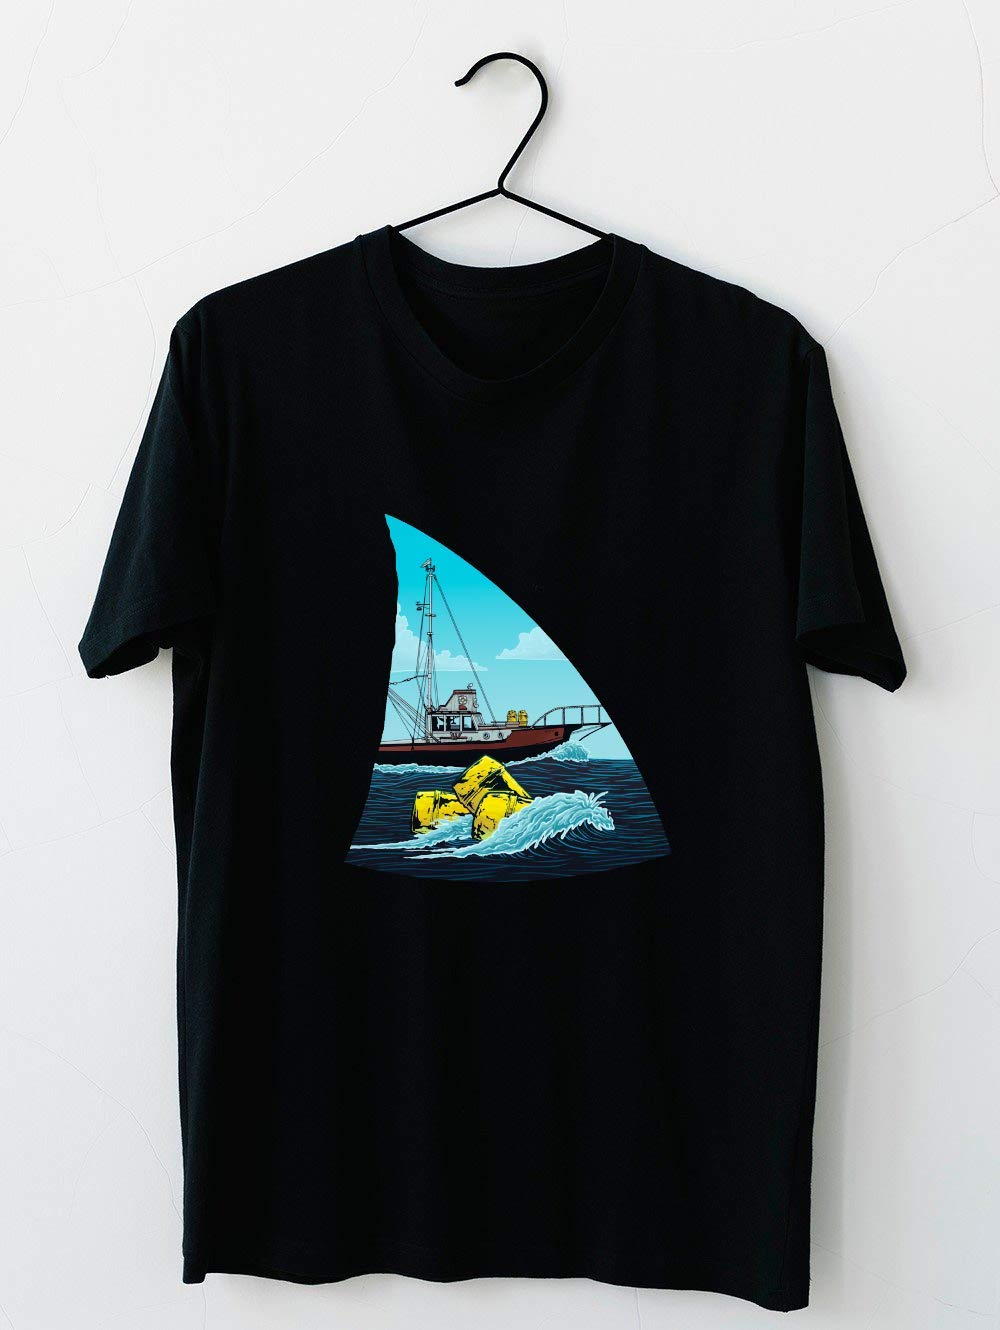 Jaws The Orca 95 For Unisex Shirts